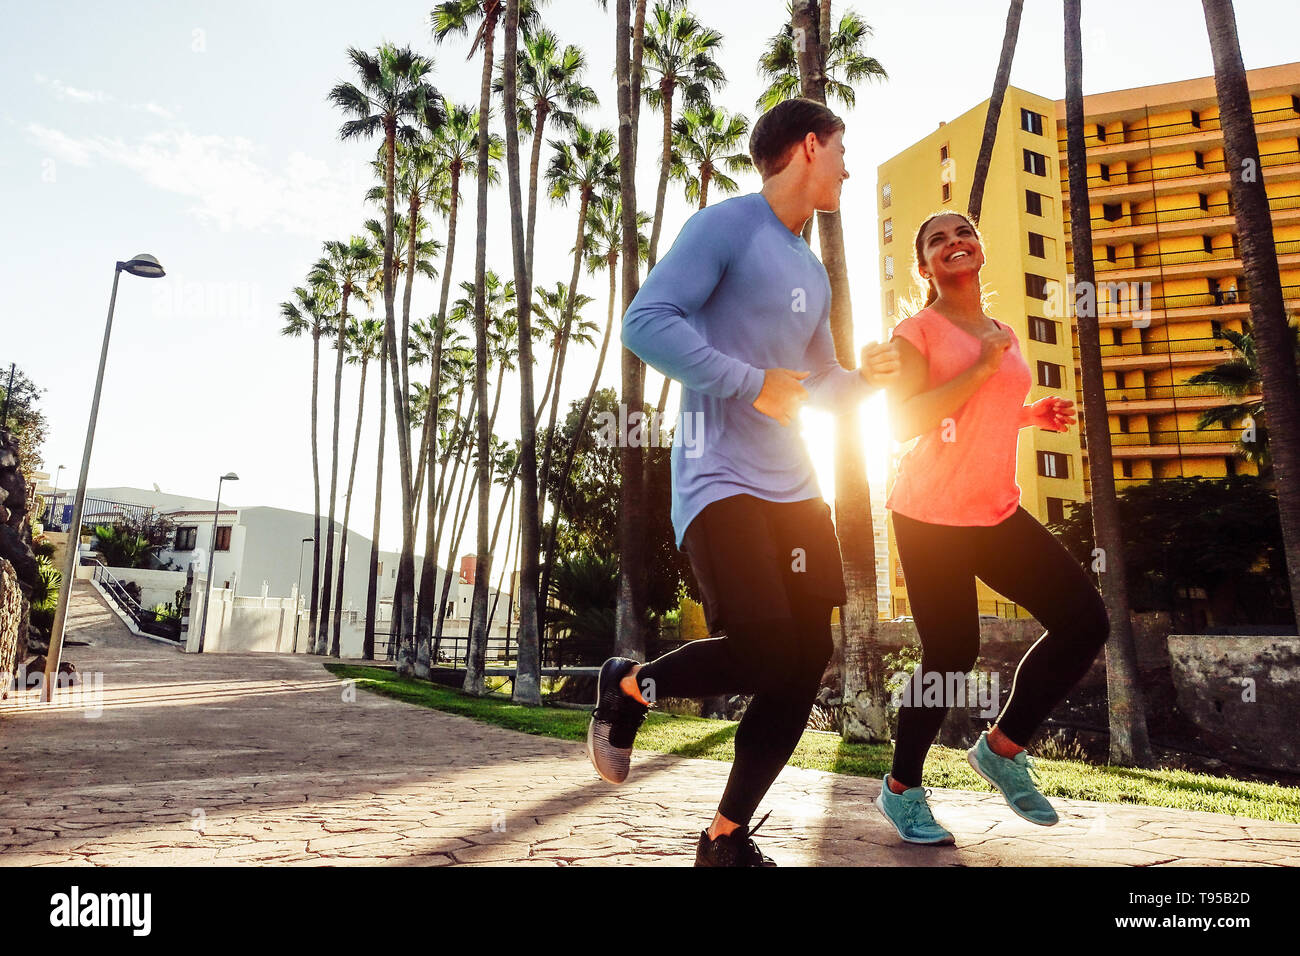 Healthy young couple jogging together  at sunset time outdoor - Happy sportive people running in the city - Relationship, sport, youth lifestyle conce - Stock Image